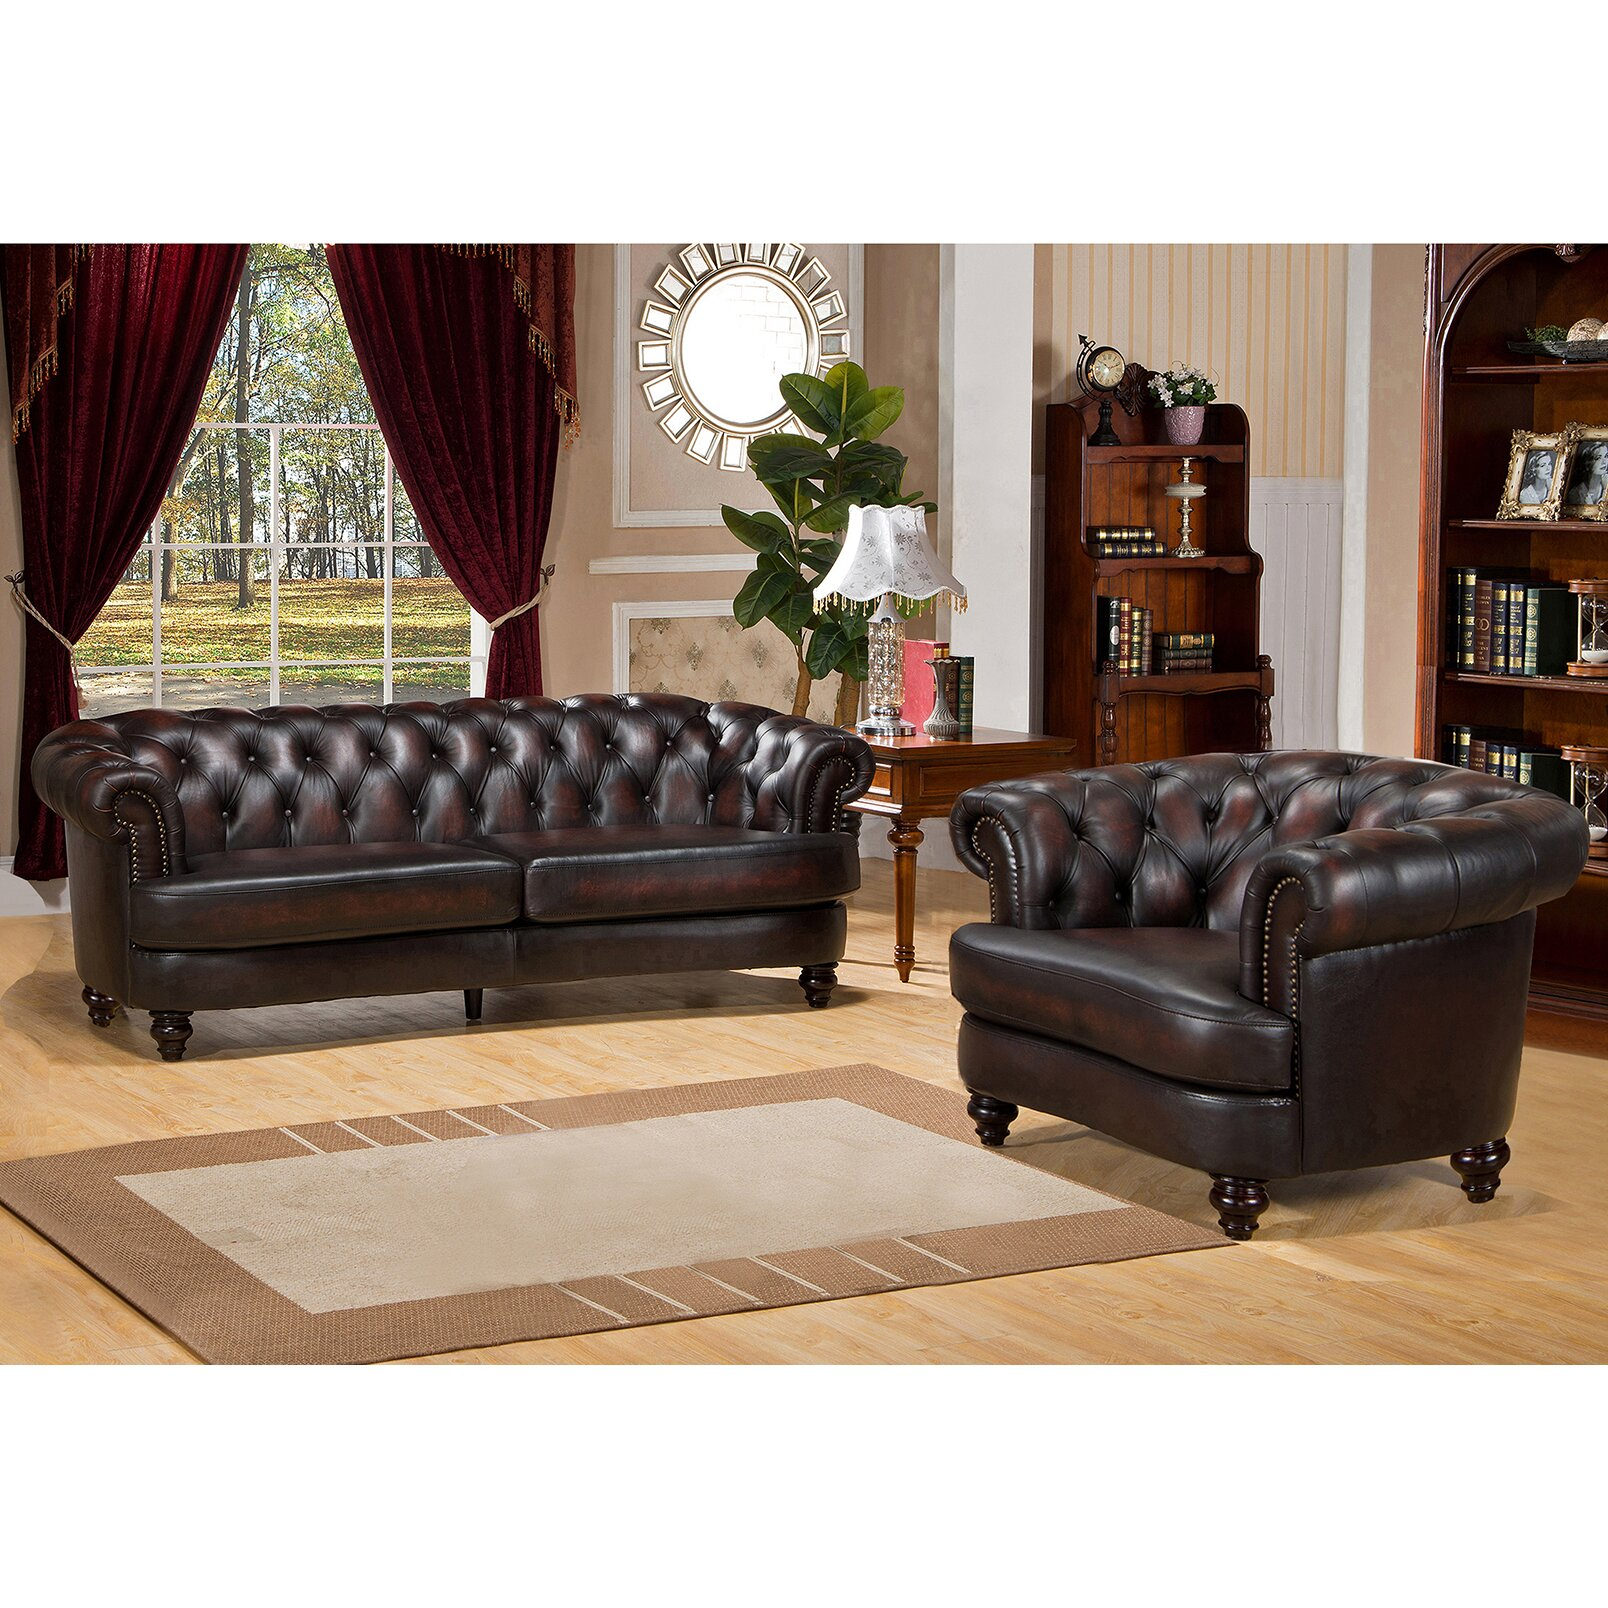 Leather Living Room Sets For Amax Roosevelt 2 Piece Leather Living Room Set Wayfair